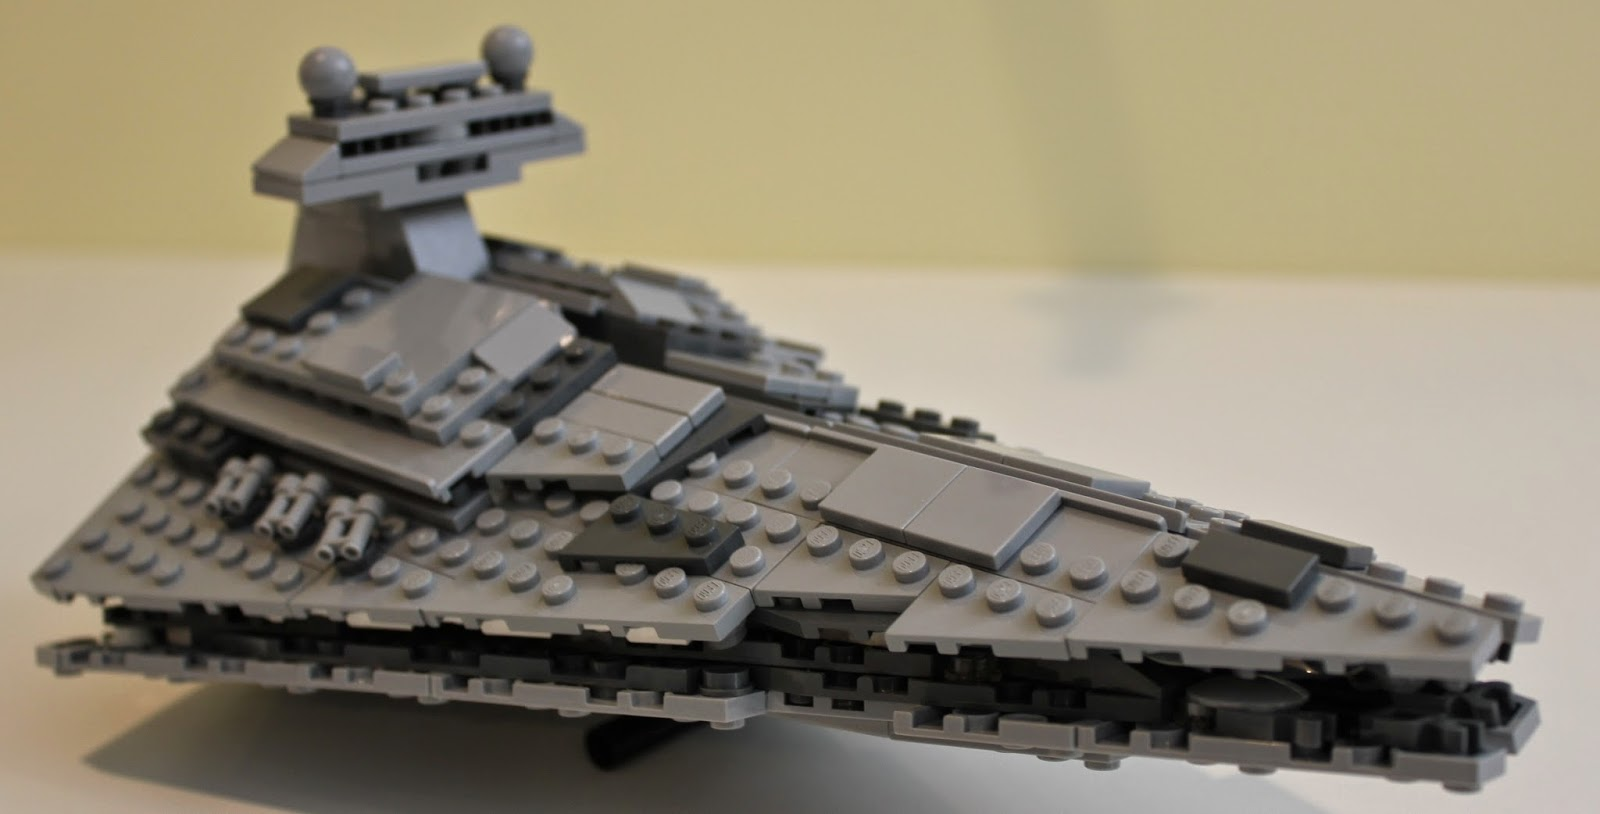 lego star destroyer - photo #11